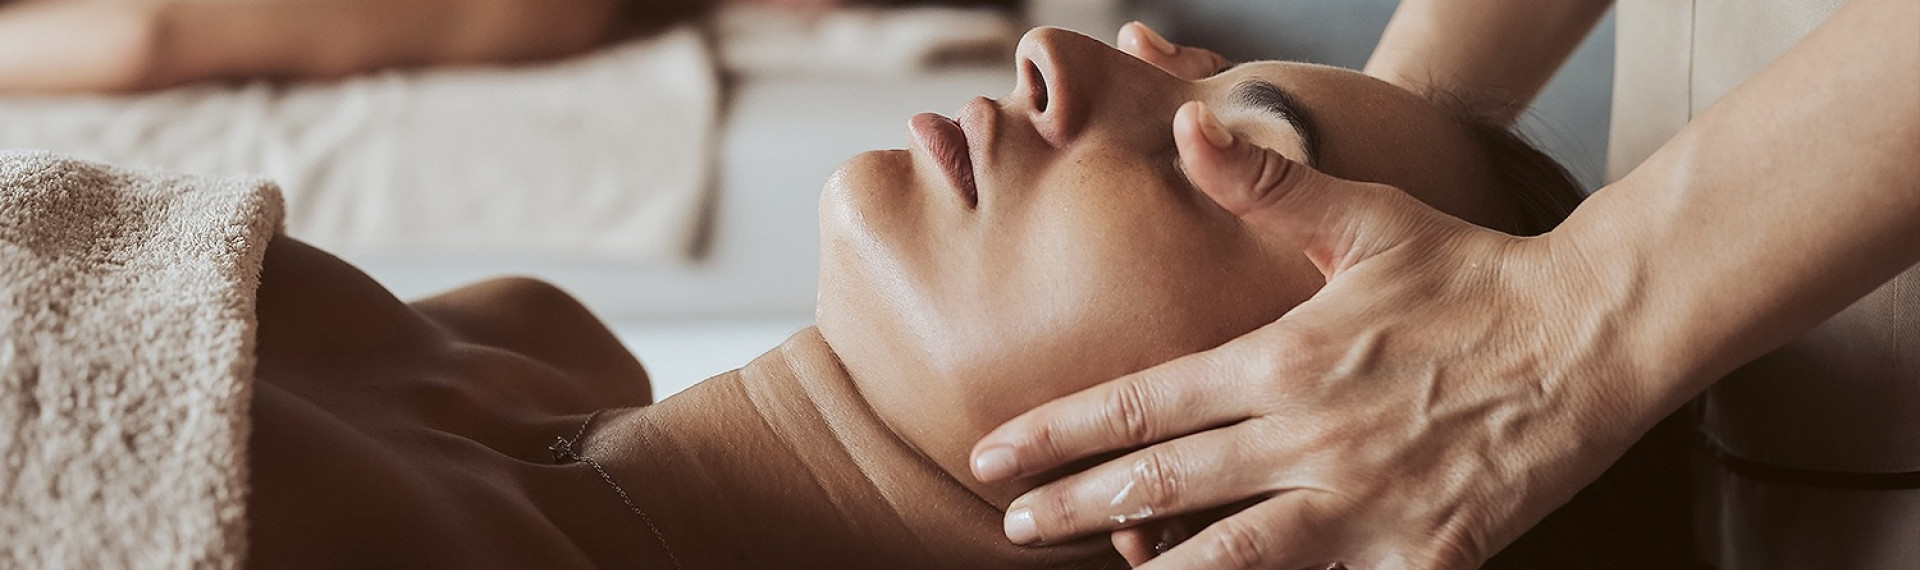 woman receiving a massage header